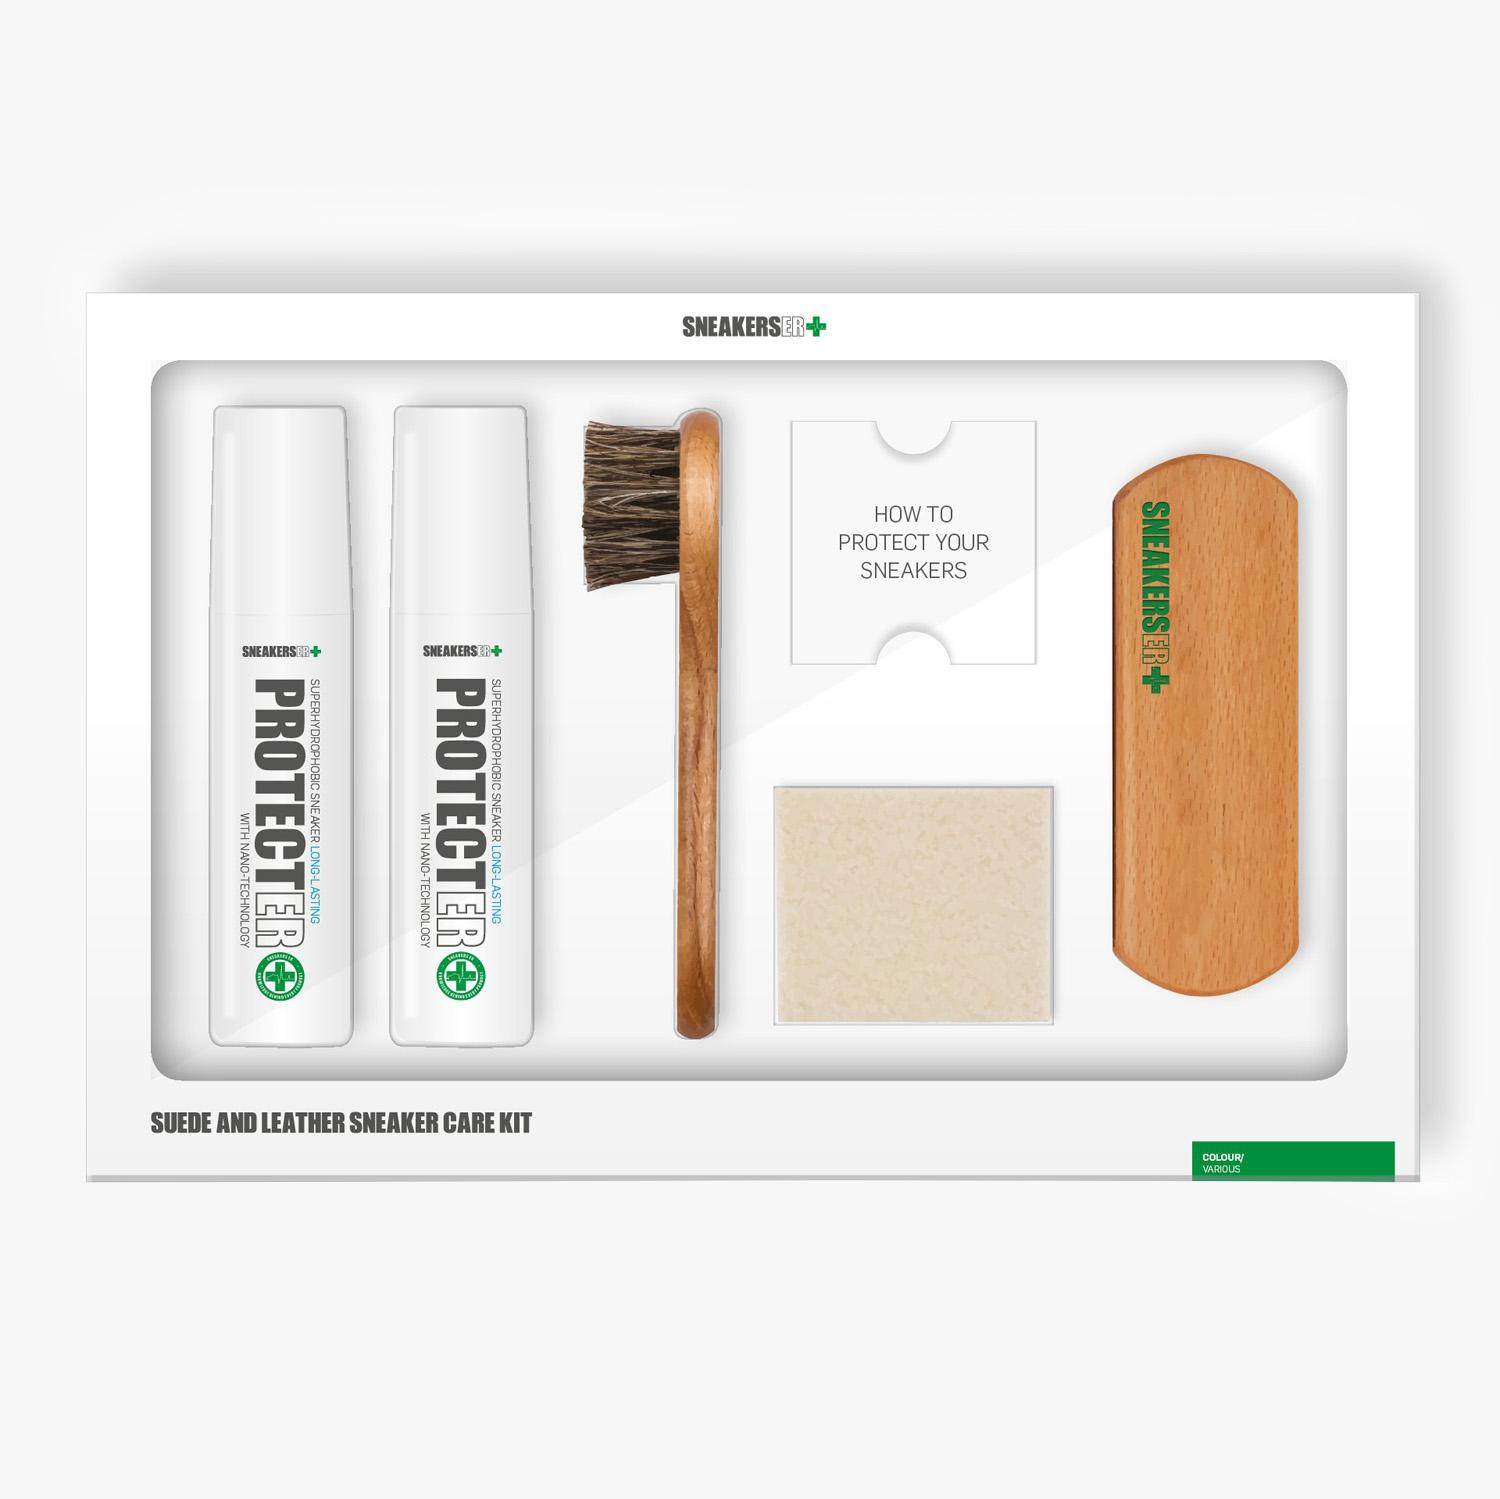 SneakersER Care Kit Suede And Leather Sneaker